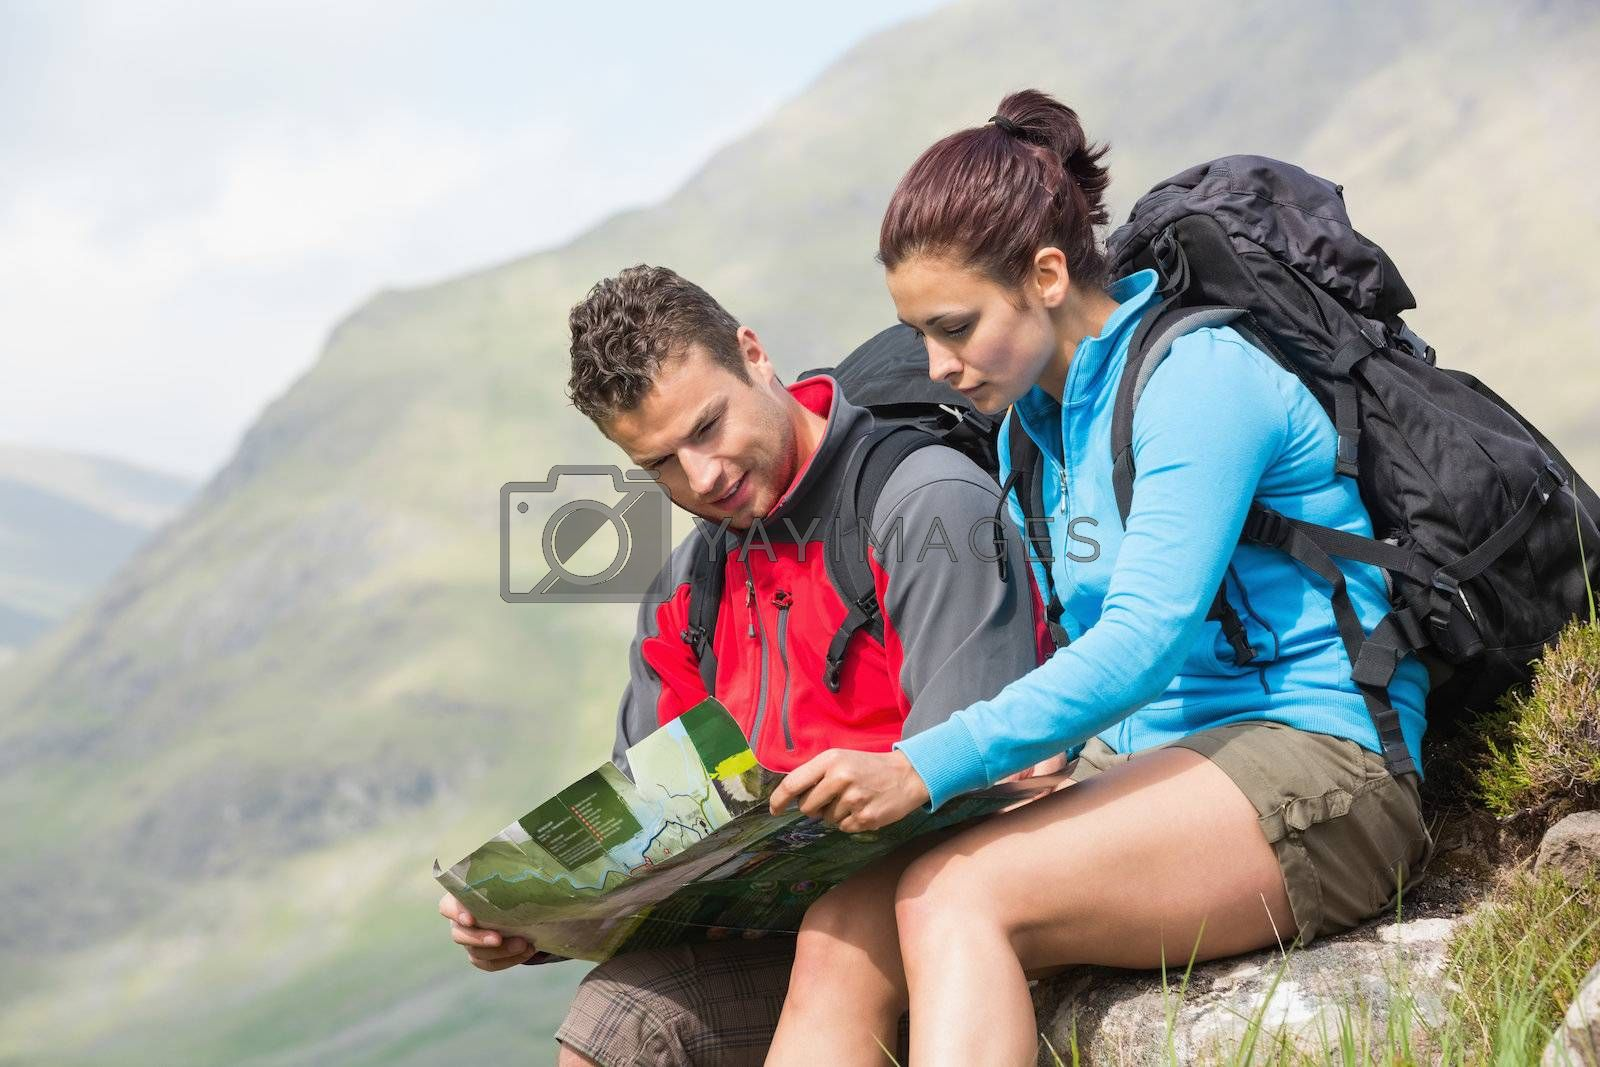 Couple resting after hiking uphill and reading map by Wavebreakmedia